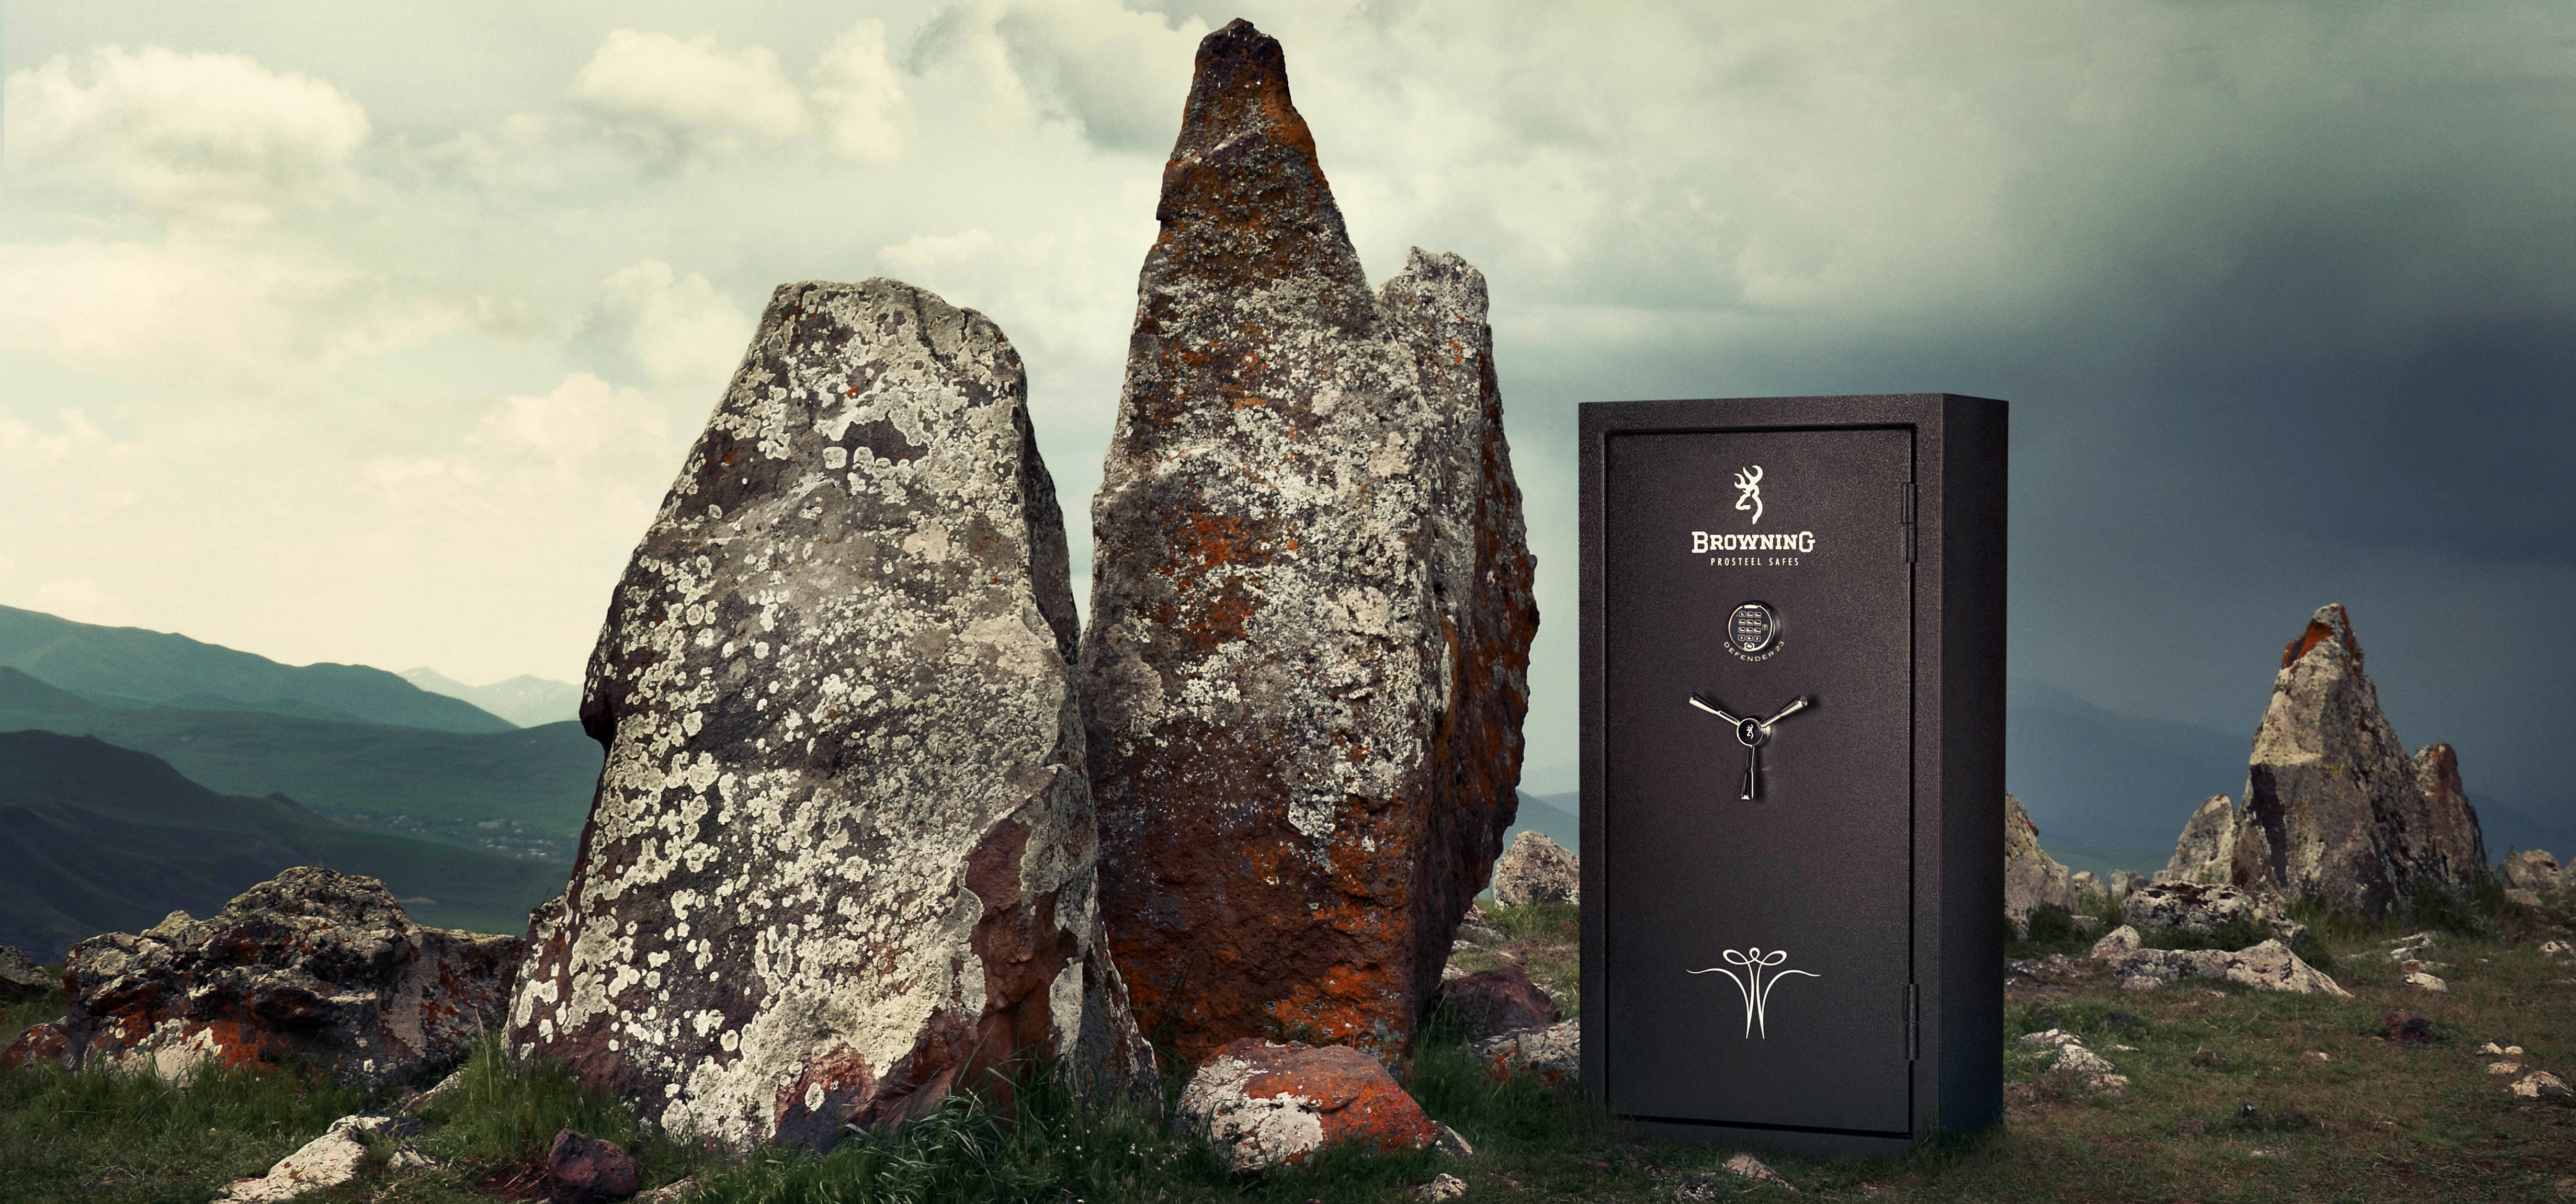 Browning blog: 5 reasons to buy a Browning safe